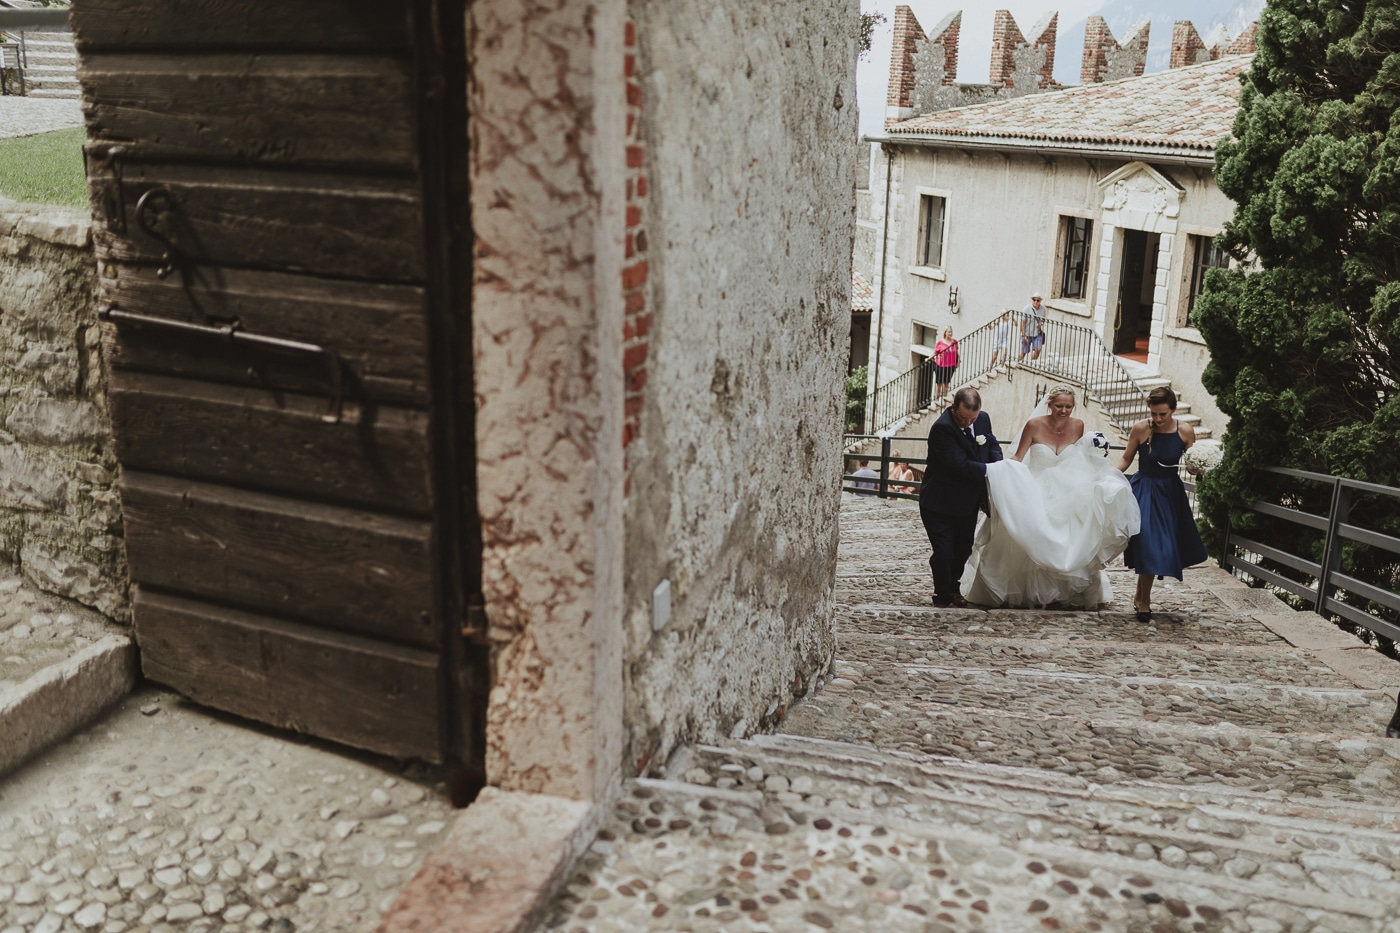 Bride and bridesmaid walk up stone steps to doorway with father holding dress